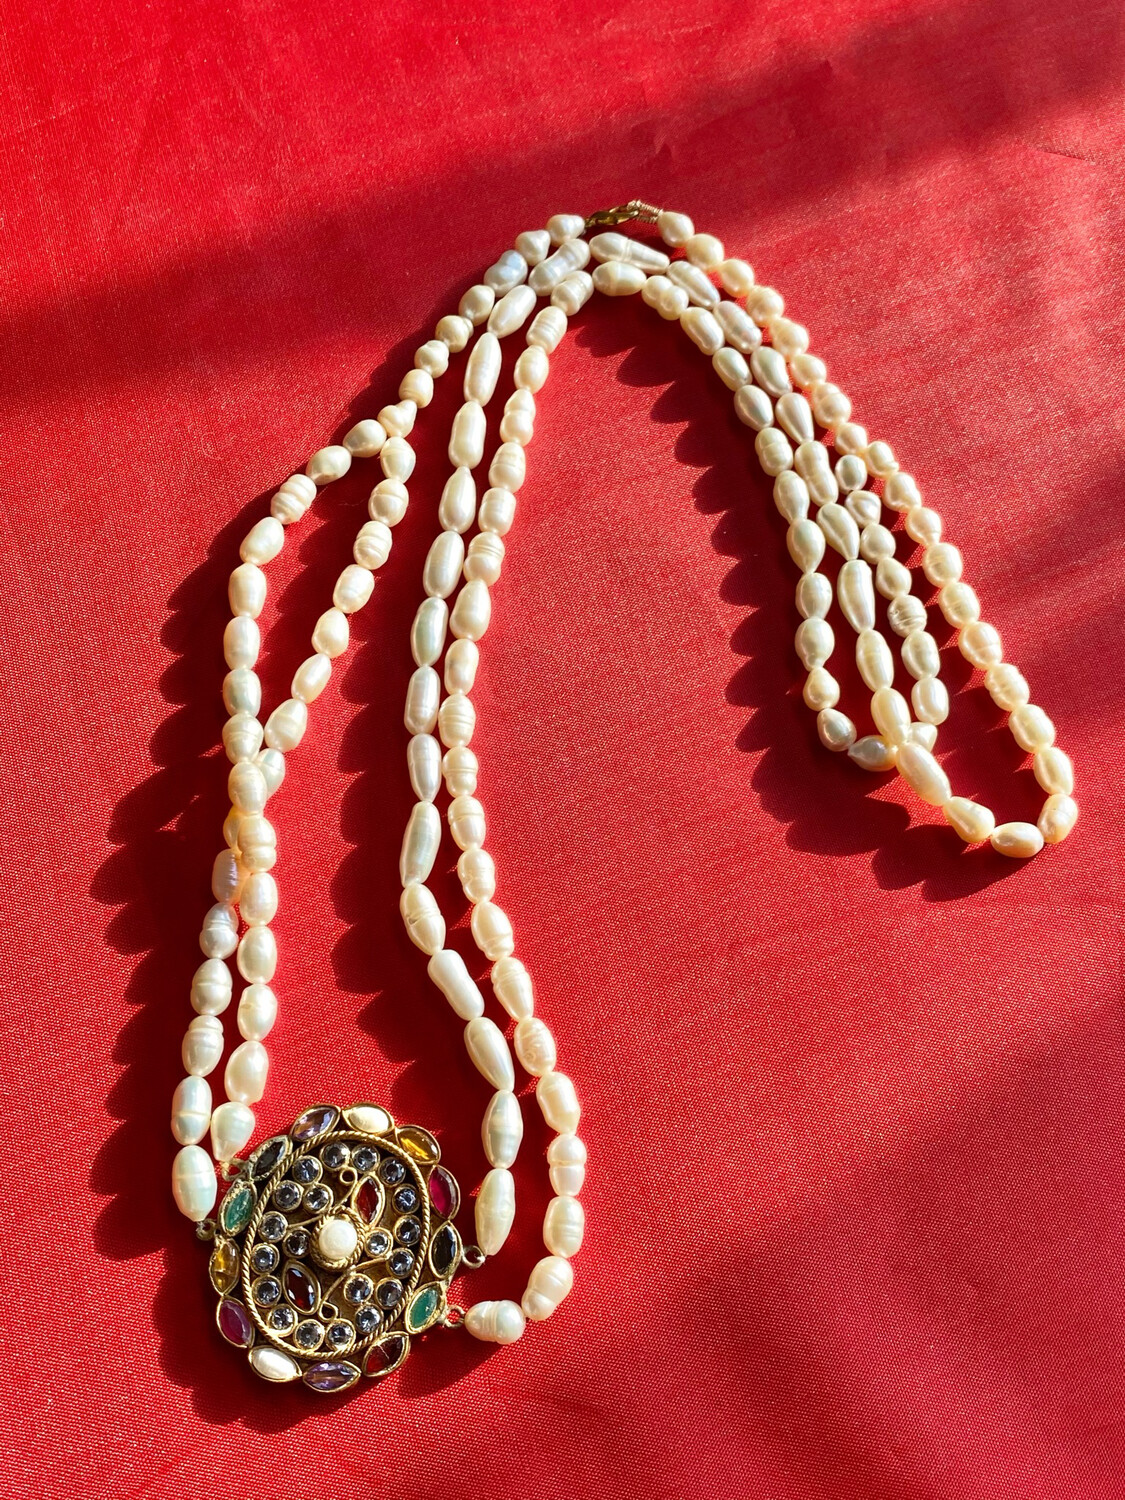 Double String Cultured Pearl Necklace With Large Encrusted Ornament